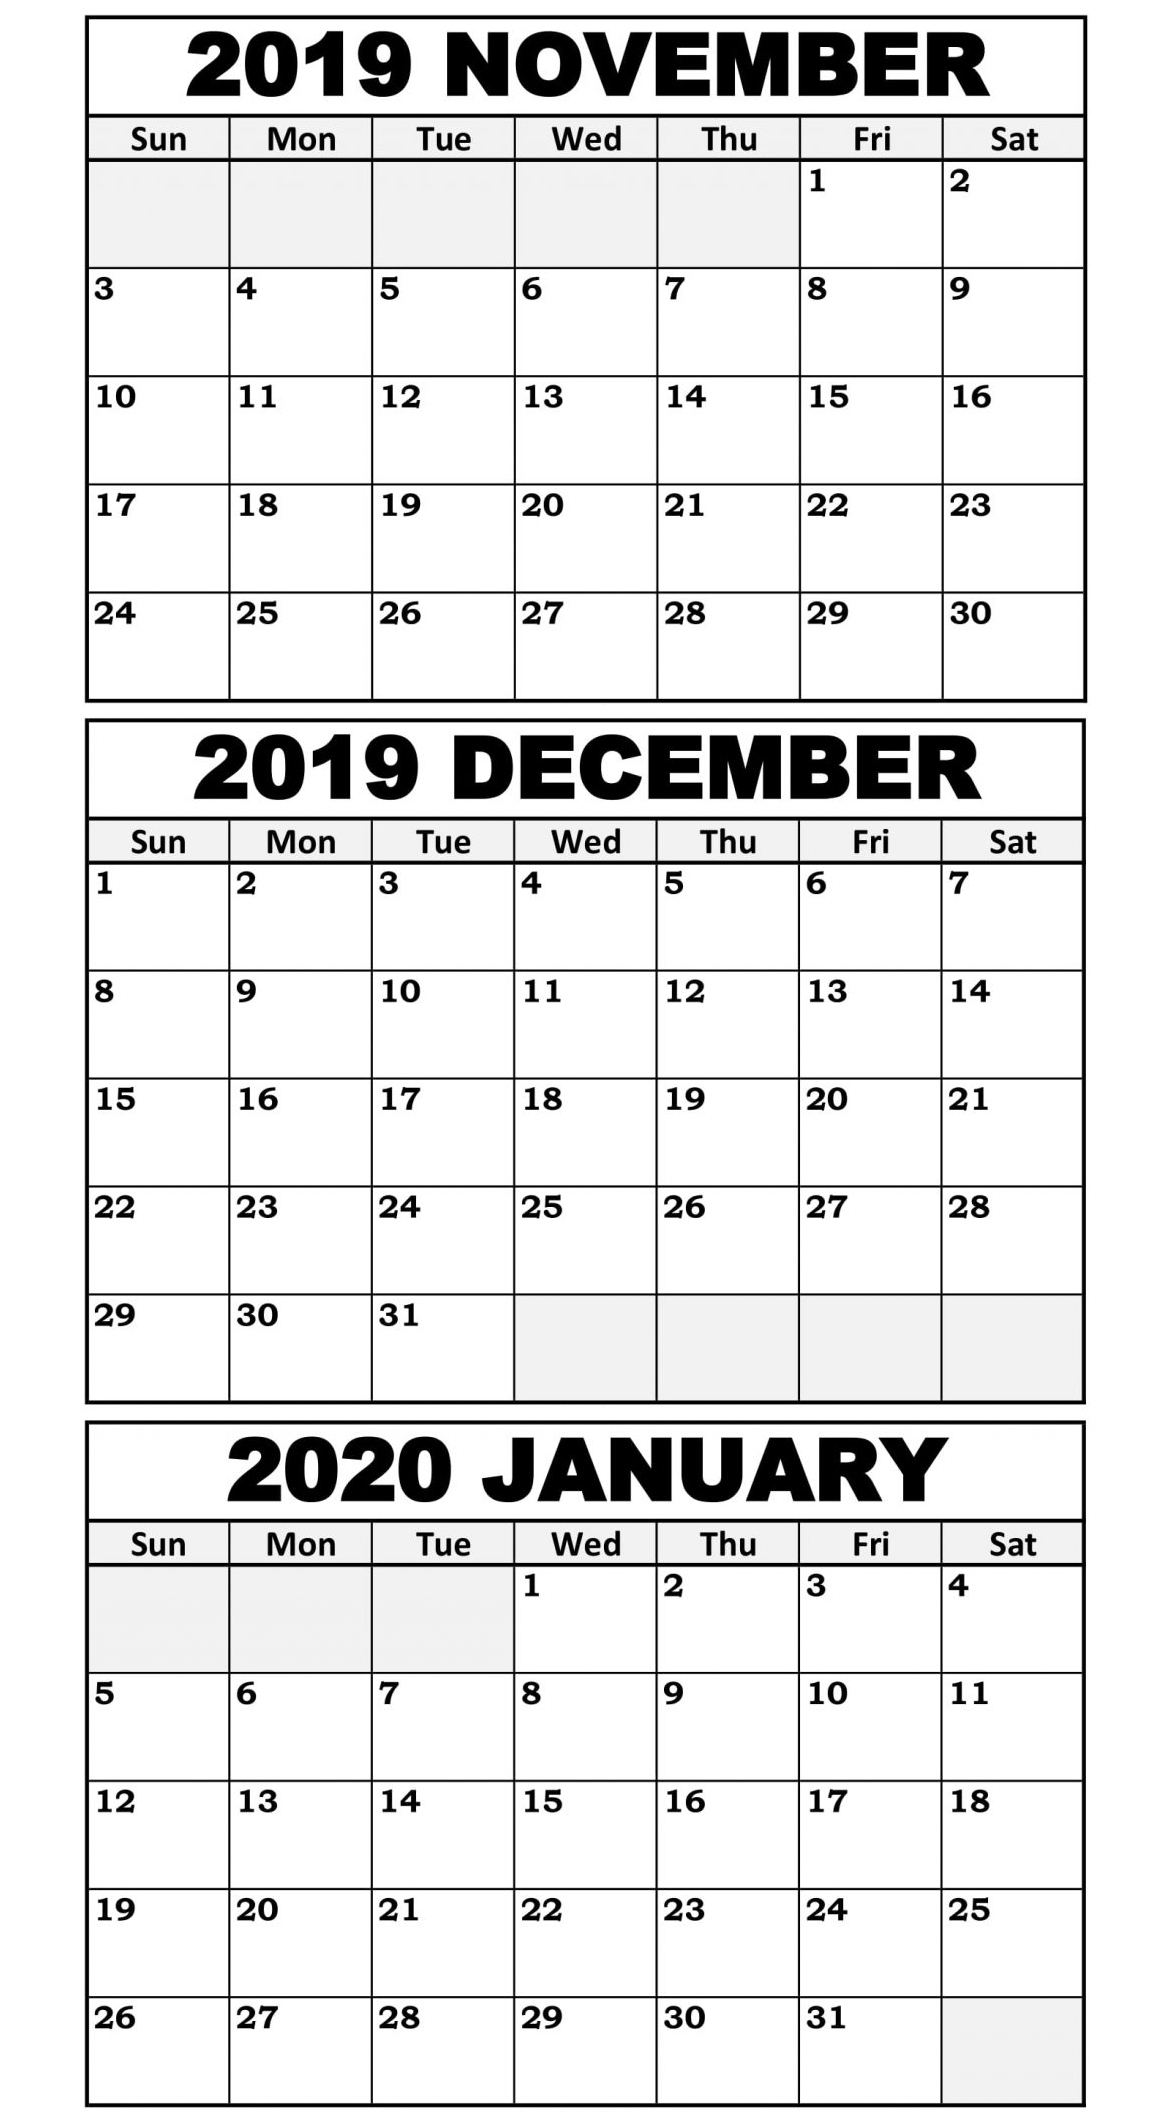 Bunny, Author At 2019 Calendars For Students Education